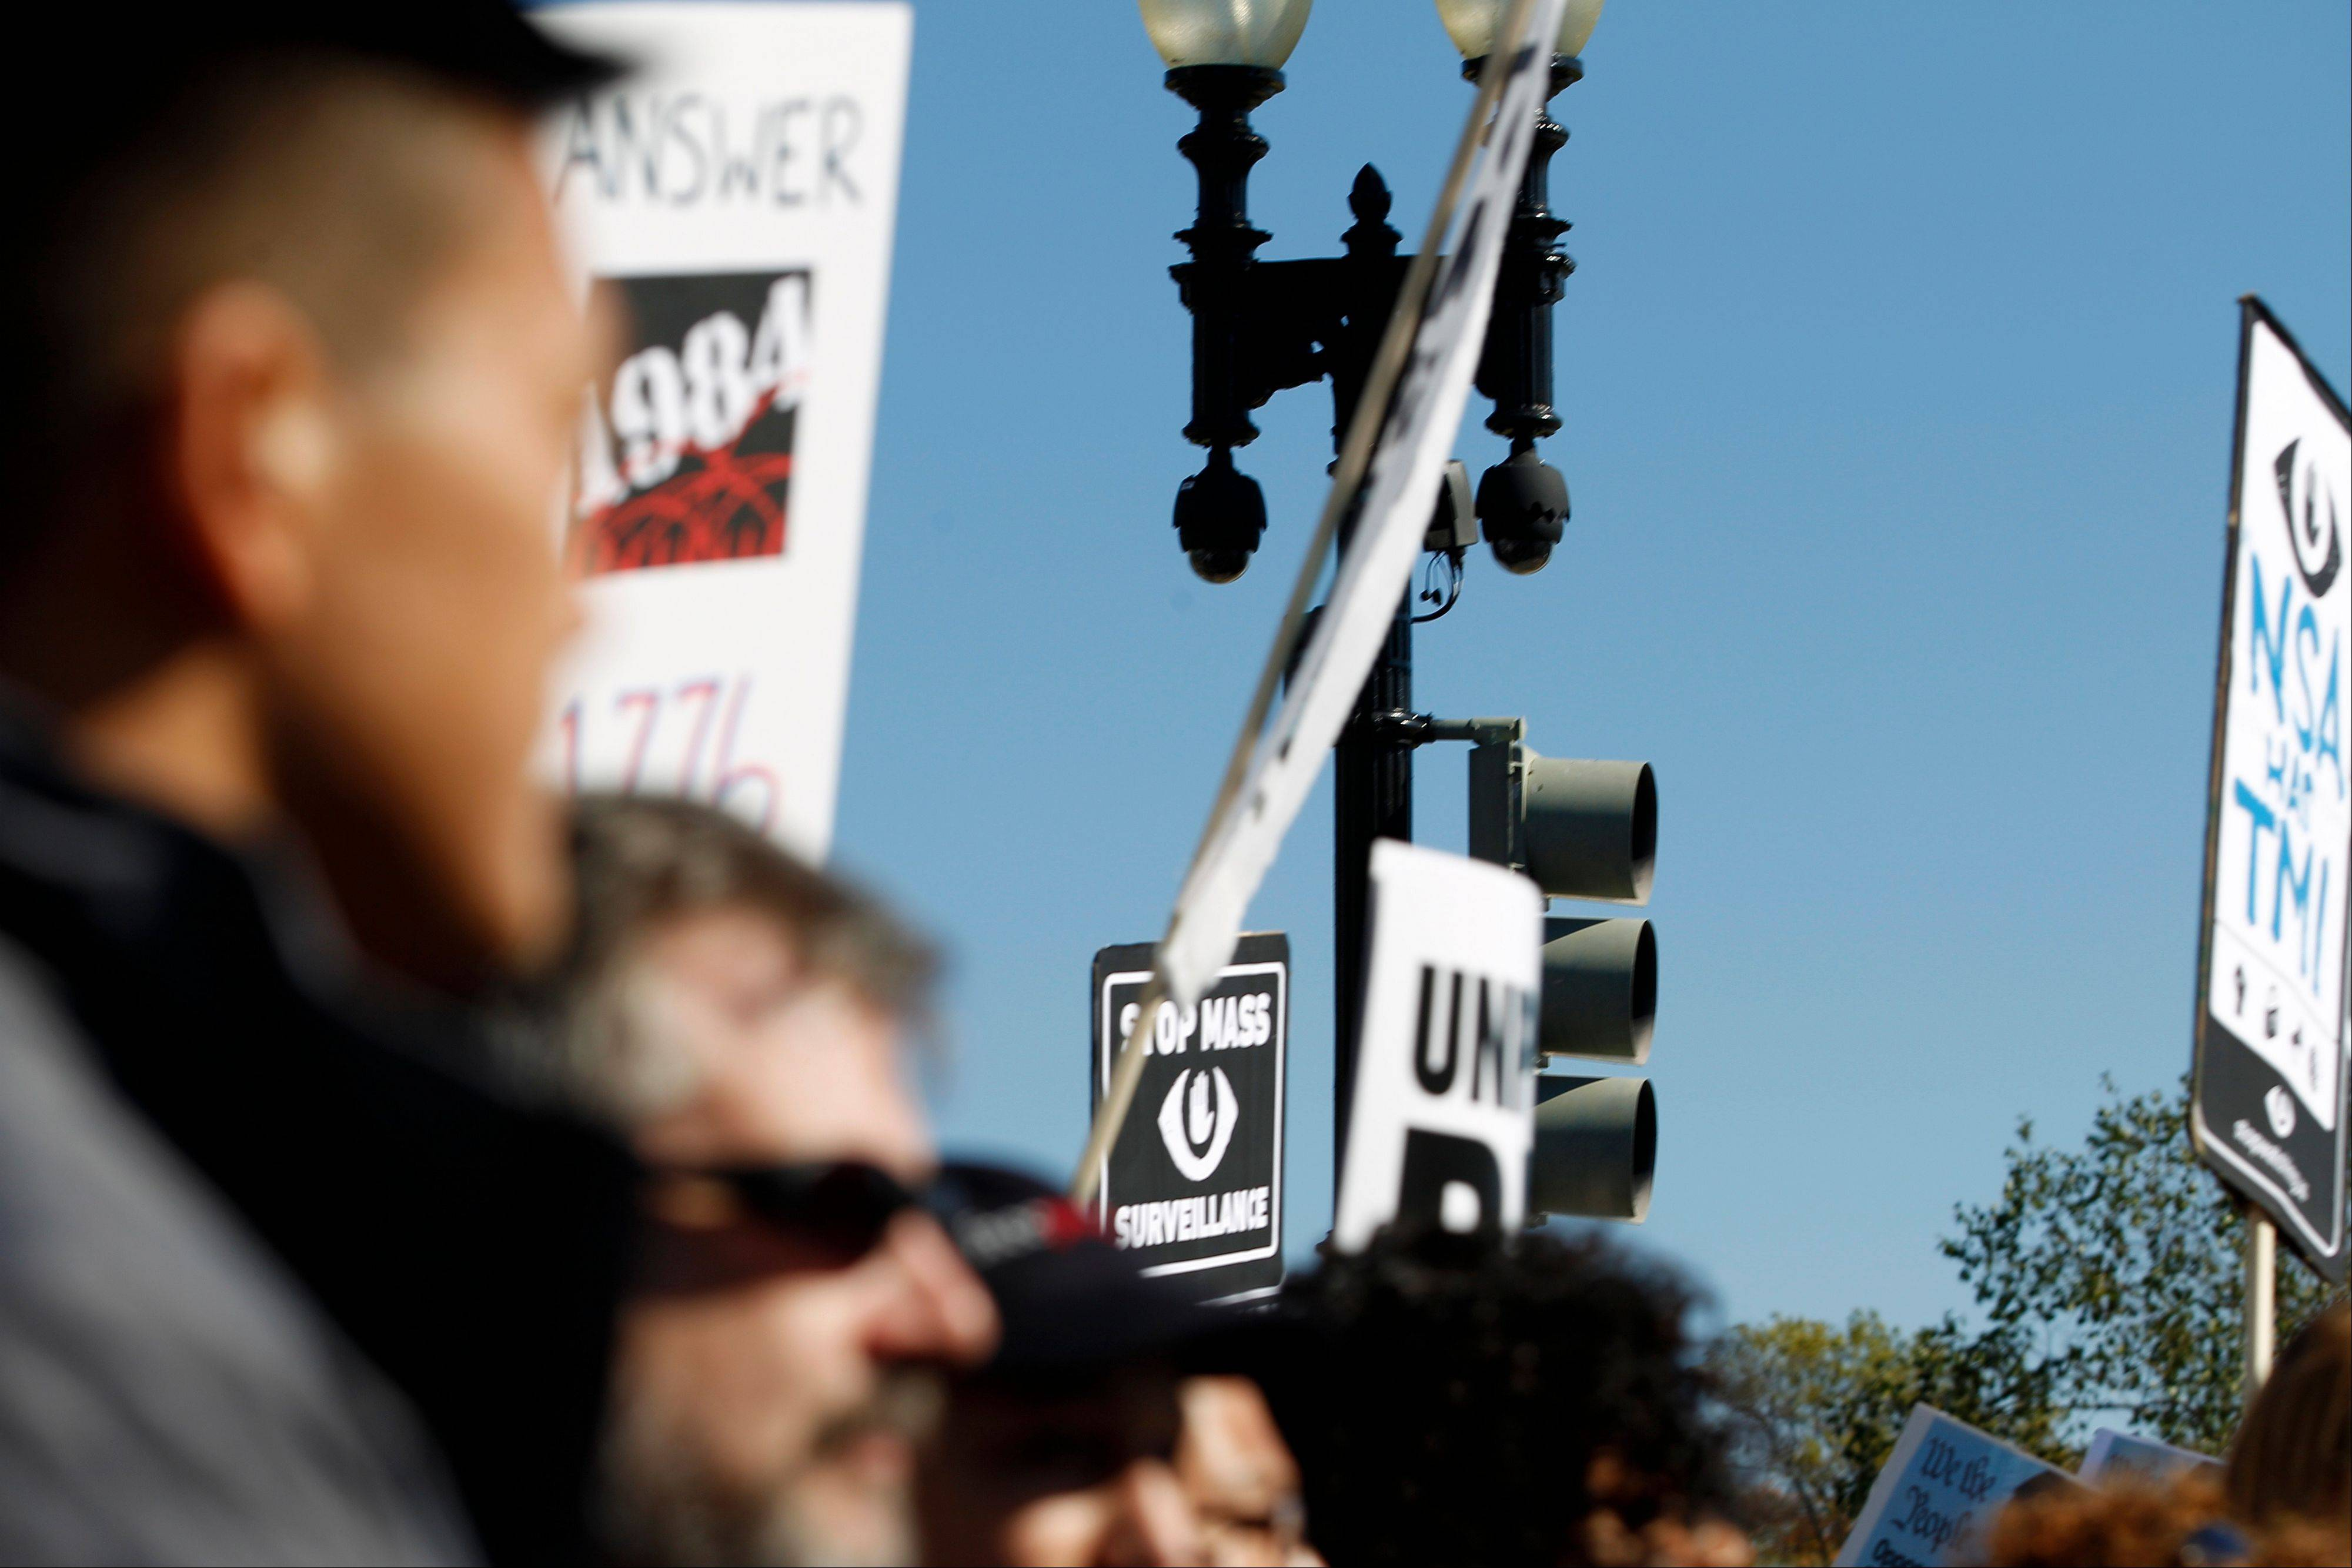 Surveillance cameras are visible Saturday near the U.S. Capitol in Washington during a rally to protest against the National Security Agency�s spying on Americans.